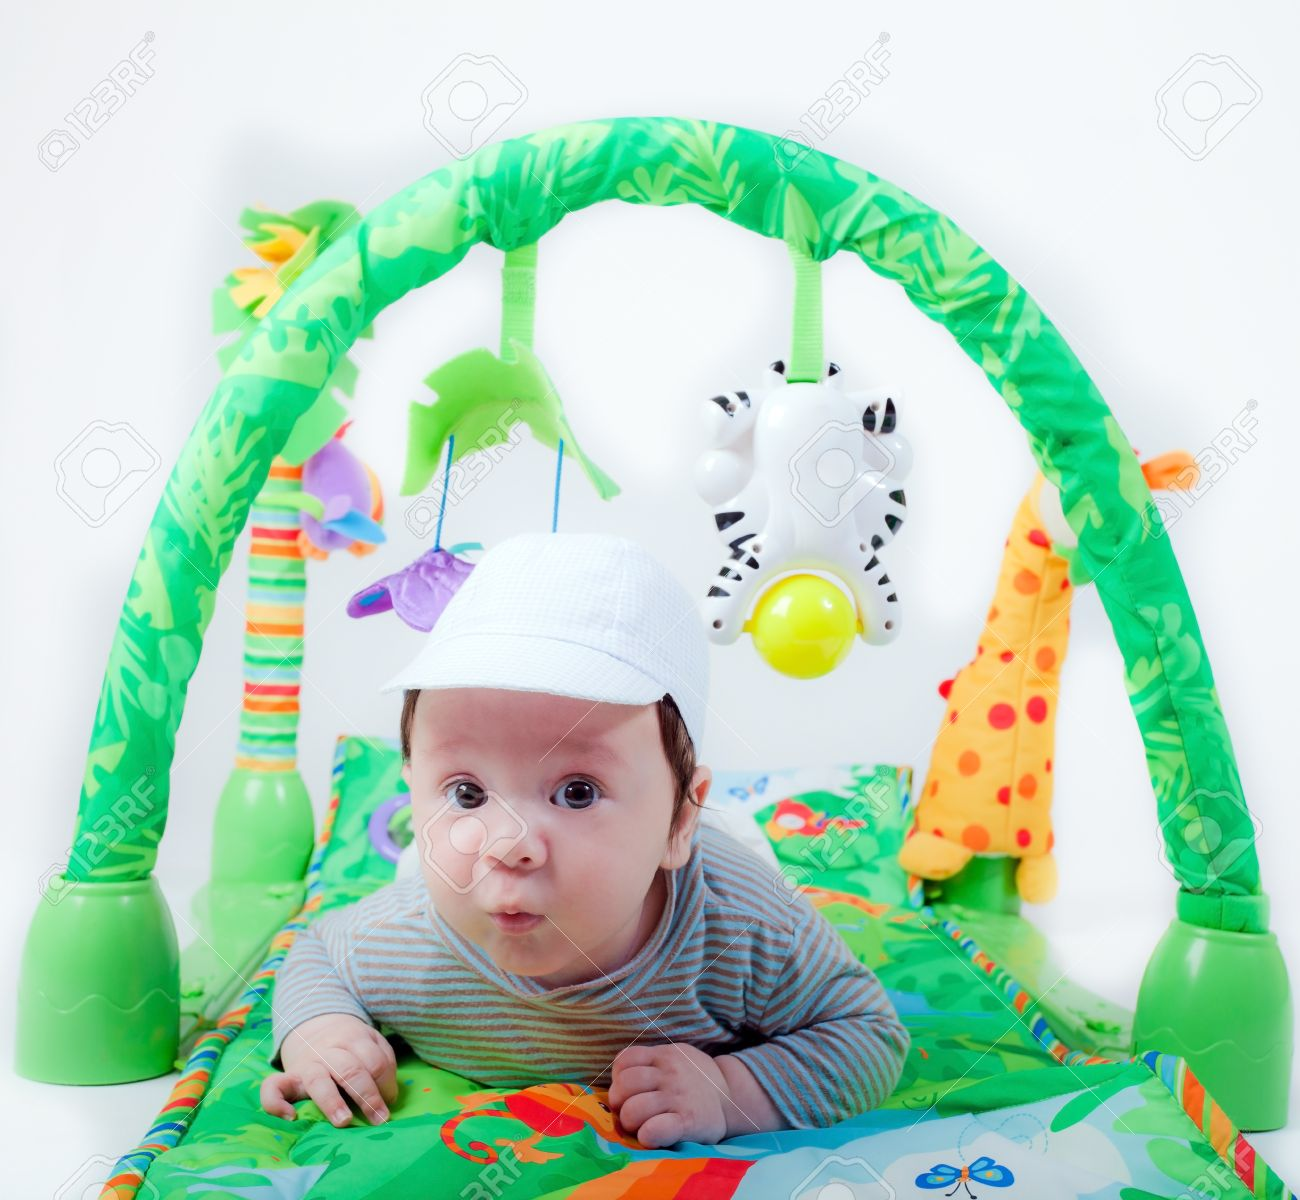 Sweet Baby Boy Is Lying Down On A Green Carpet Of Toys Stock Photo